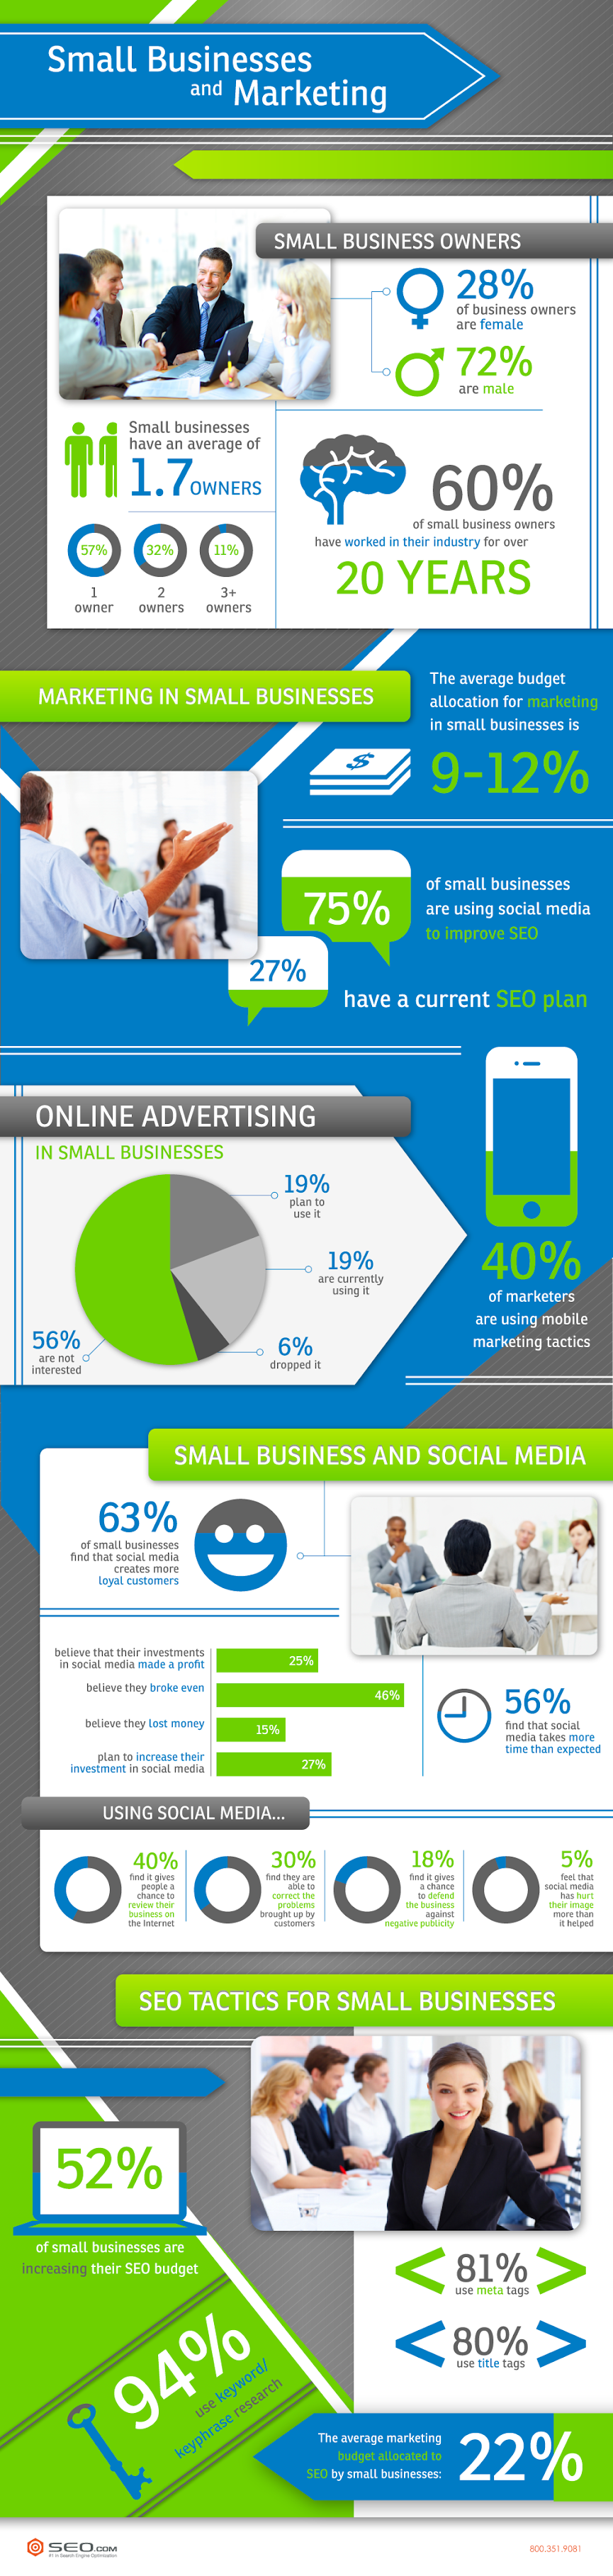 Small Business And Marketing #infographic #Marketing #Small Business #SEO